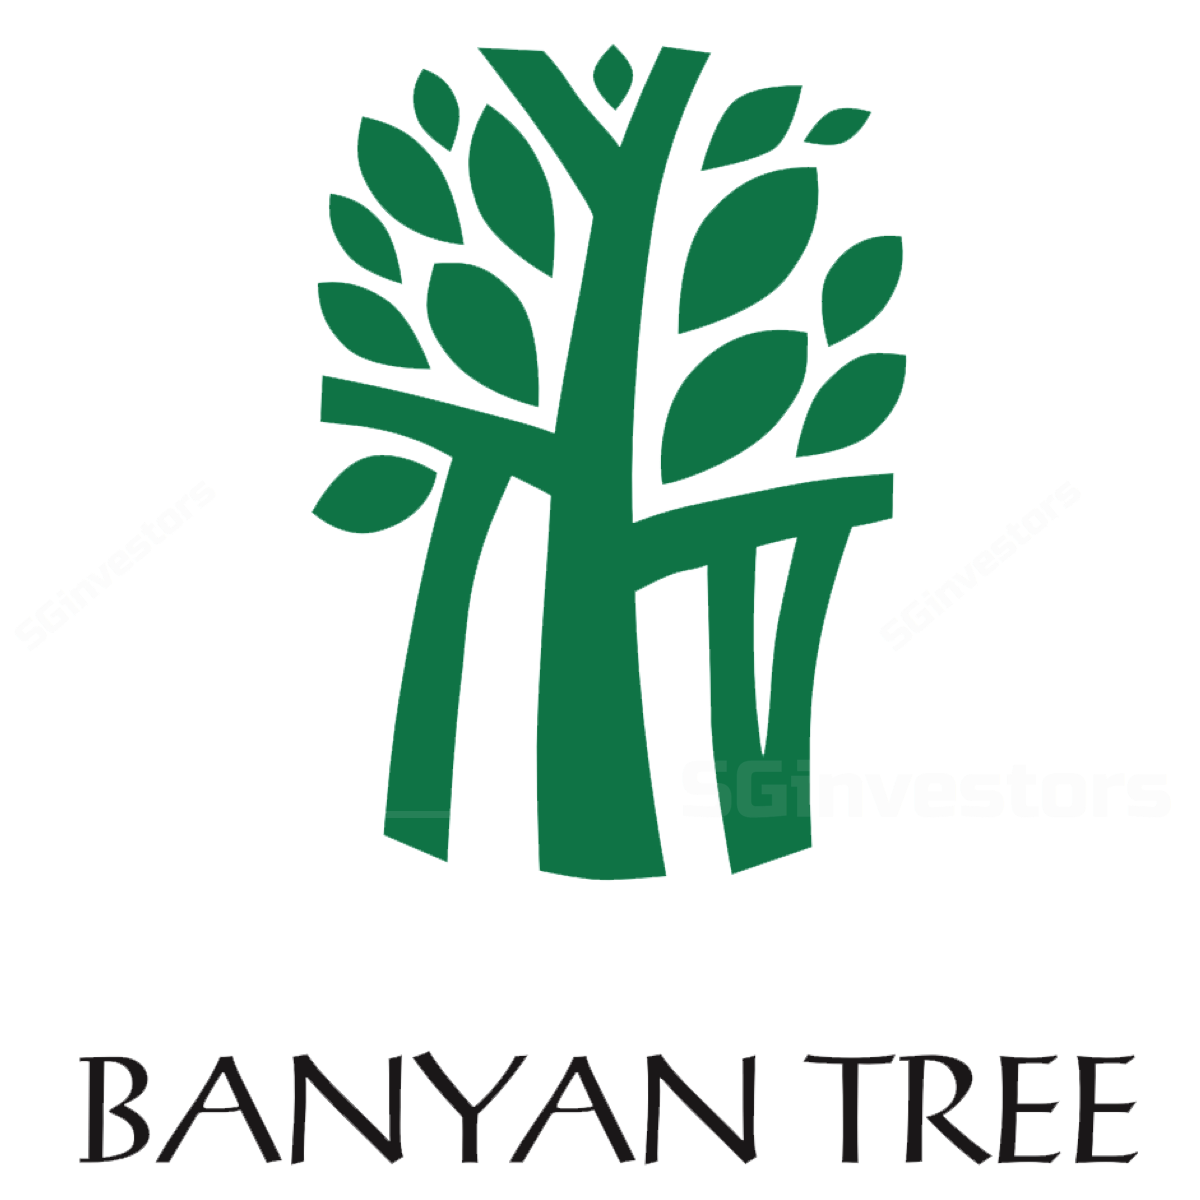 Banyan Tree Holdings (BTH SP) - UOB Kay Hian 2018-04-20: Expecting Stellar 1Q18 Results; Buying Up A Subsidiary On The Cheap